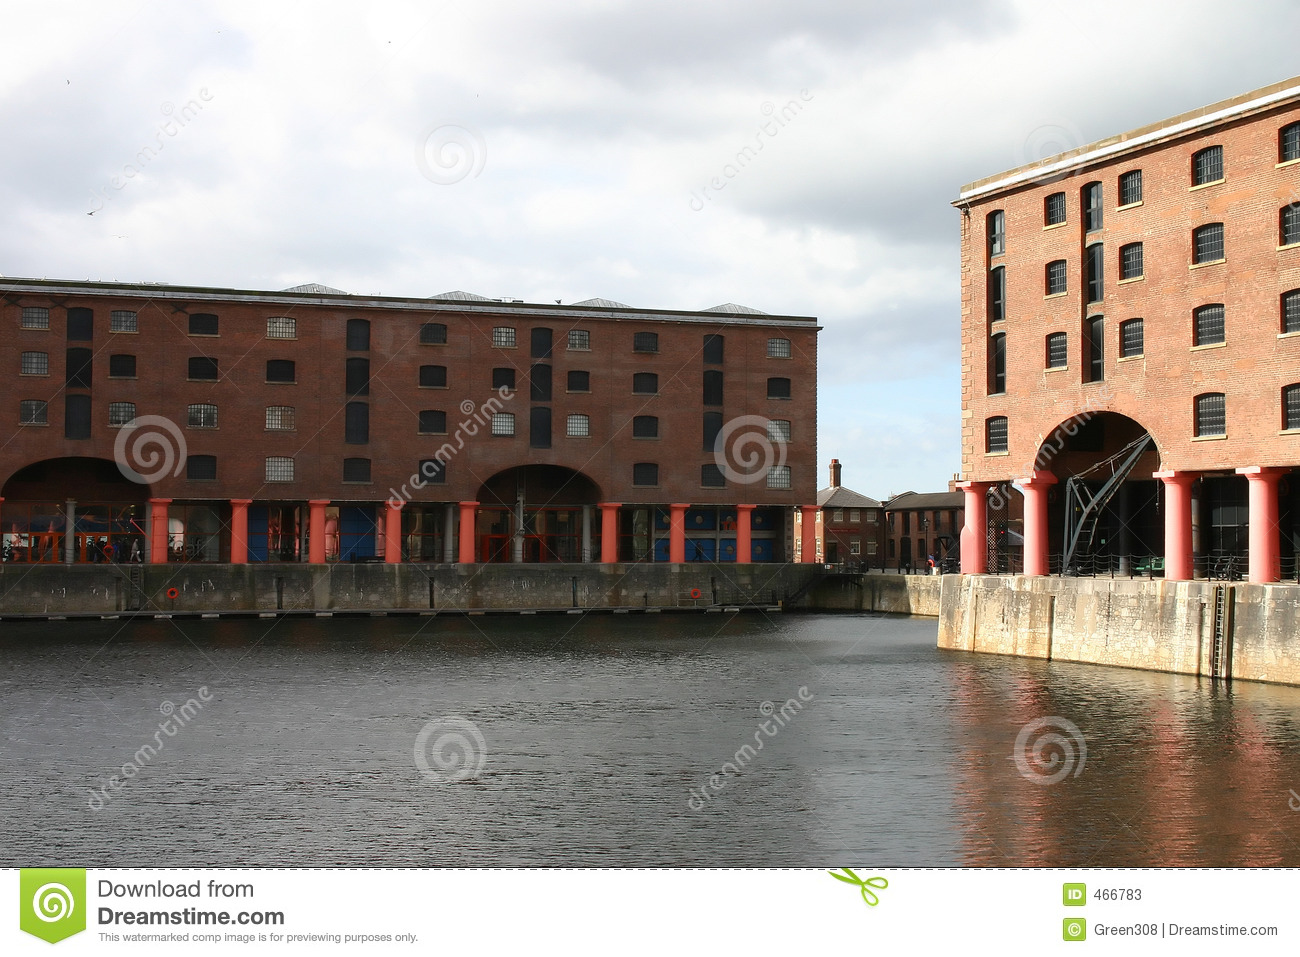 Albert Dock Basin